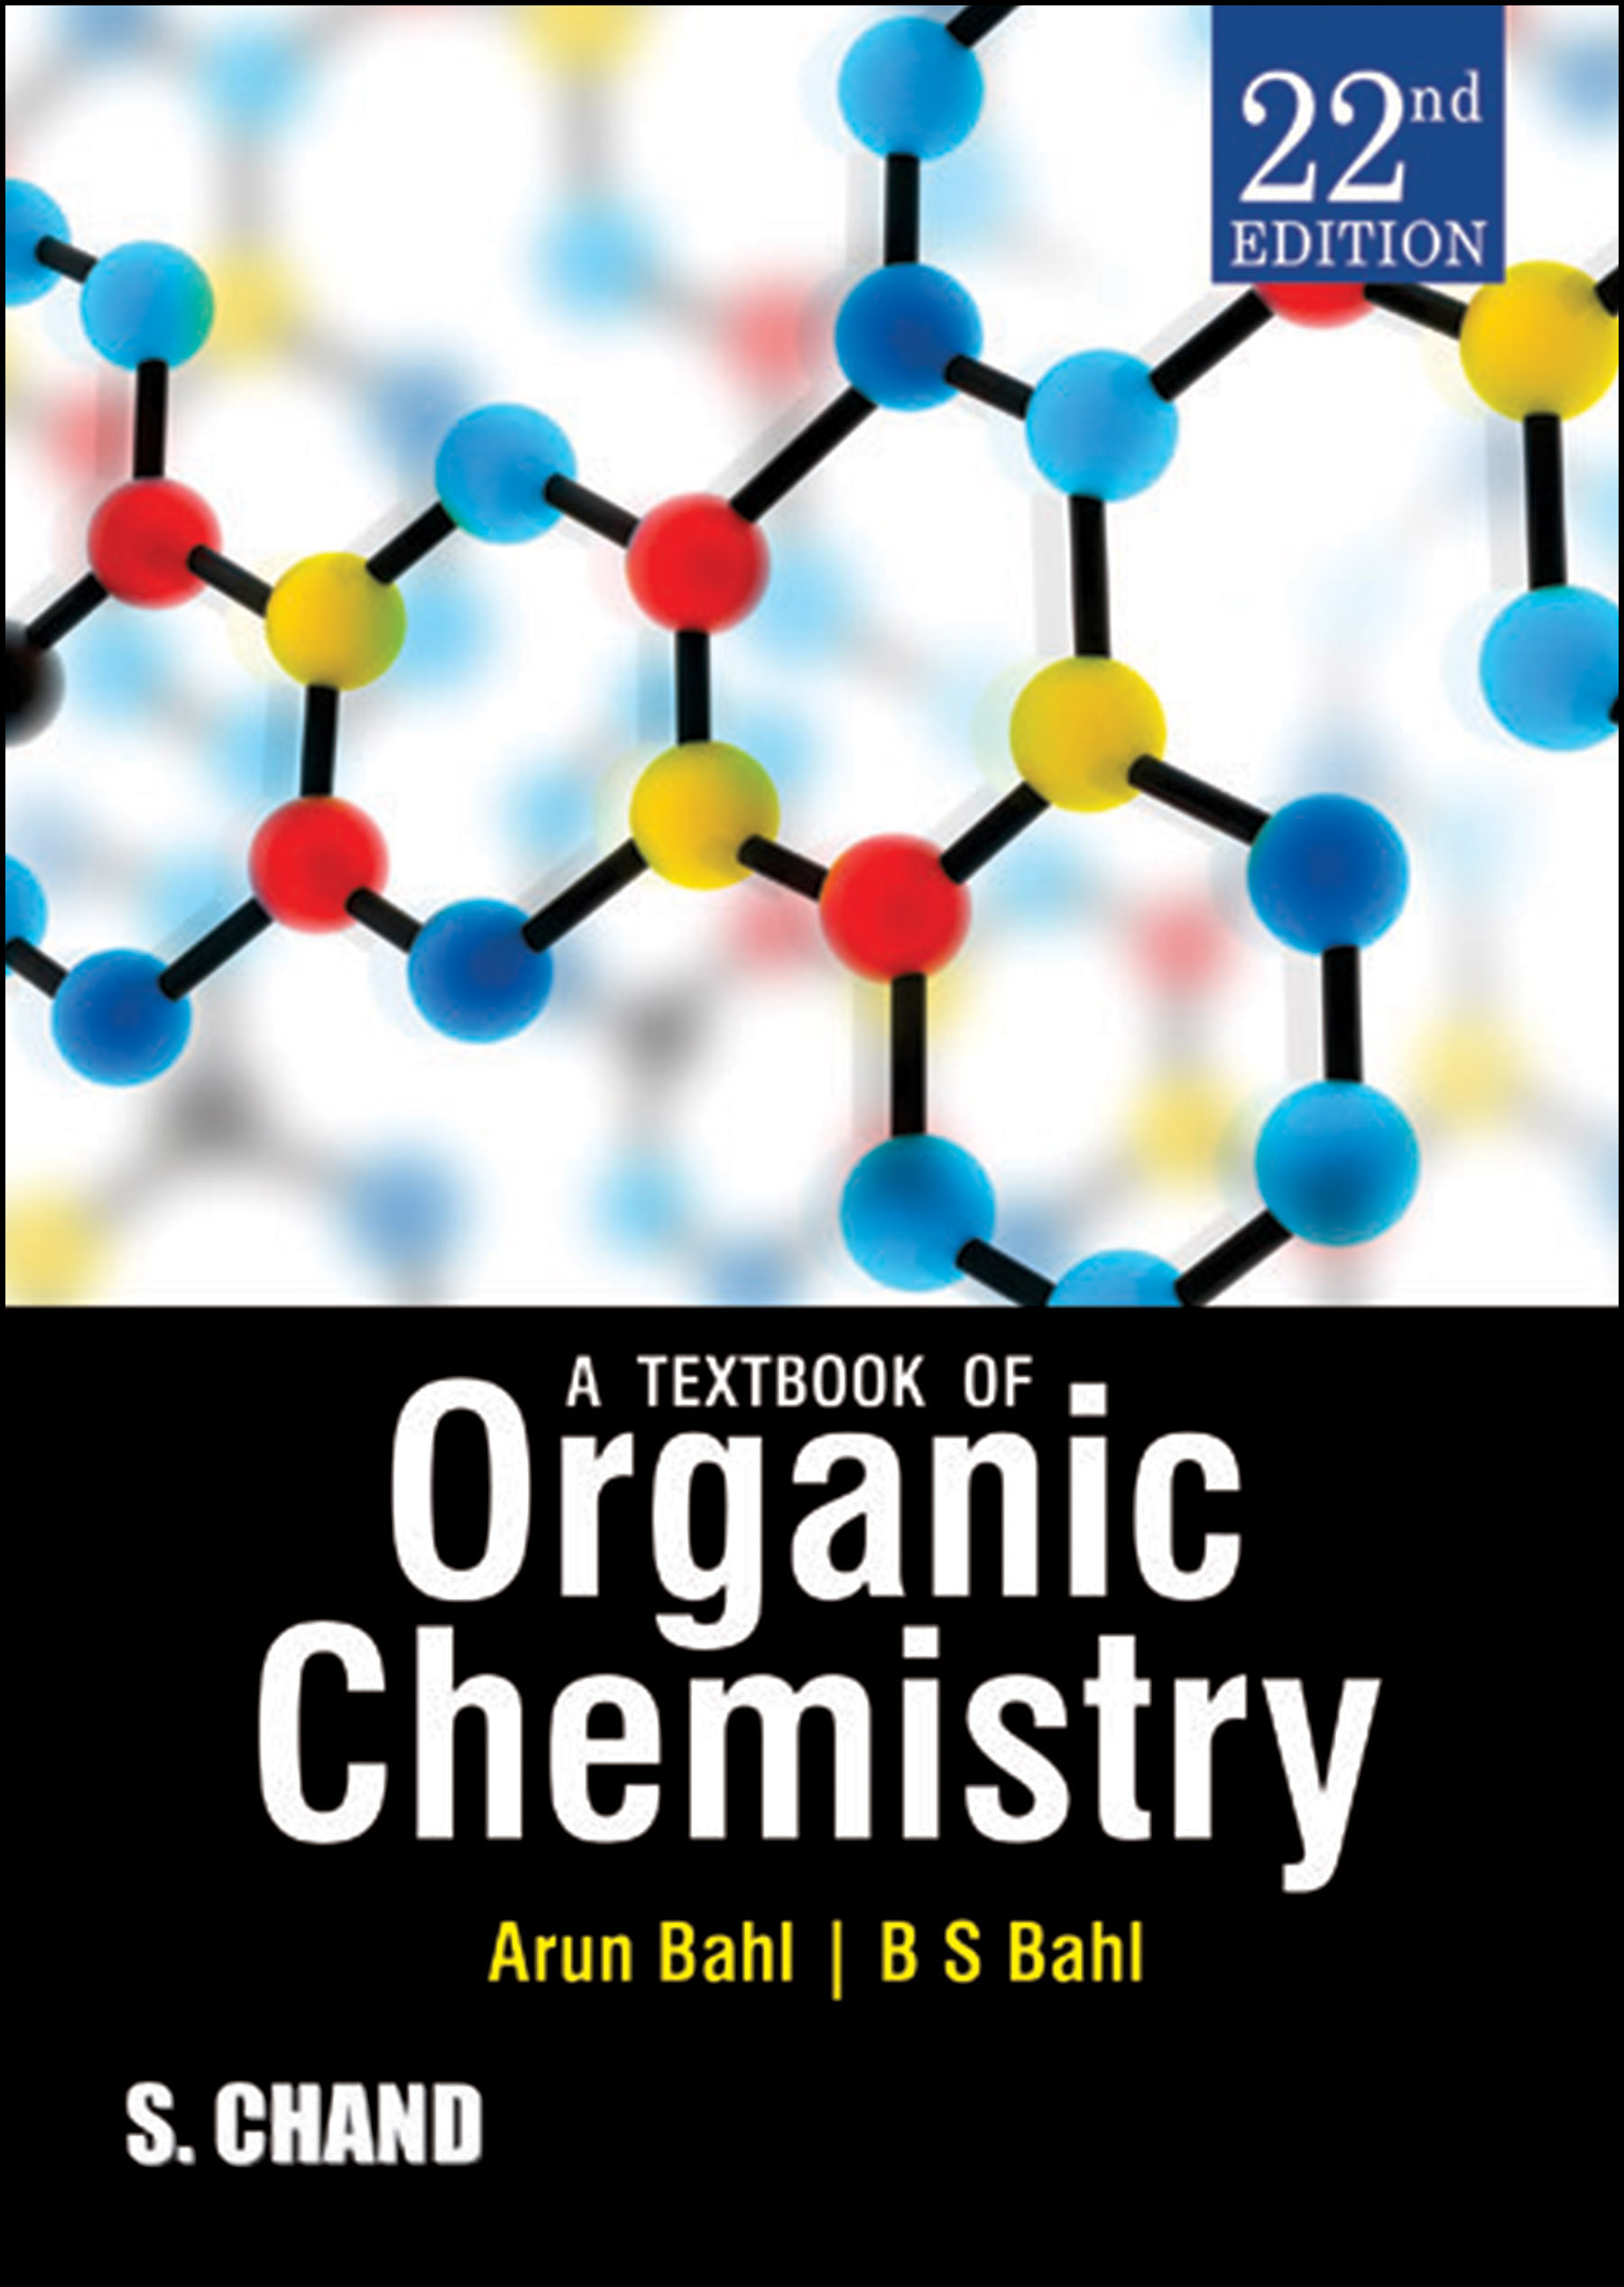 Buy Online Organic Chemistry Books lowest Price on S Chand Publishing